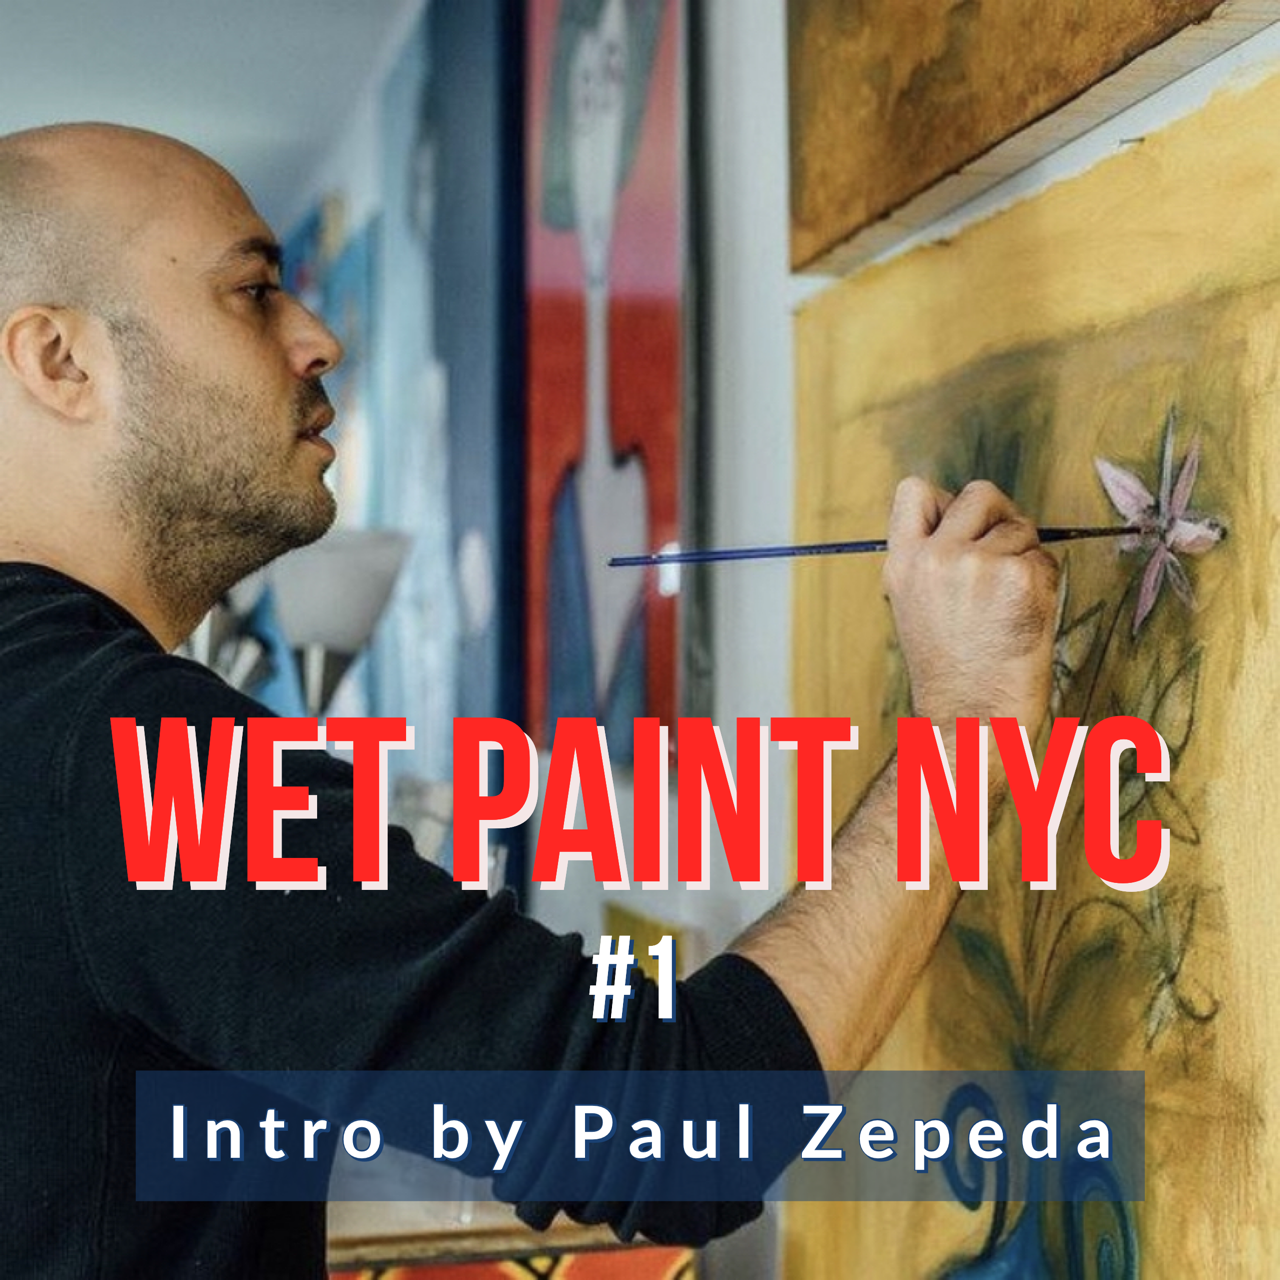 Artist Paul Zepeda introduces himself and Wet Paint NYC in the first podcast experiment.